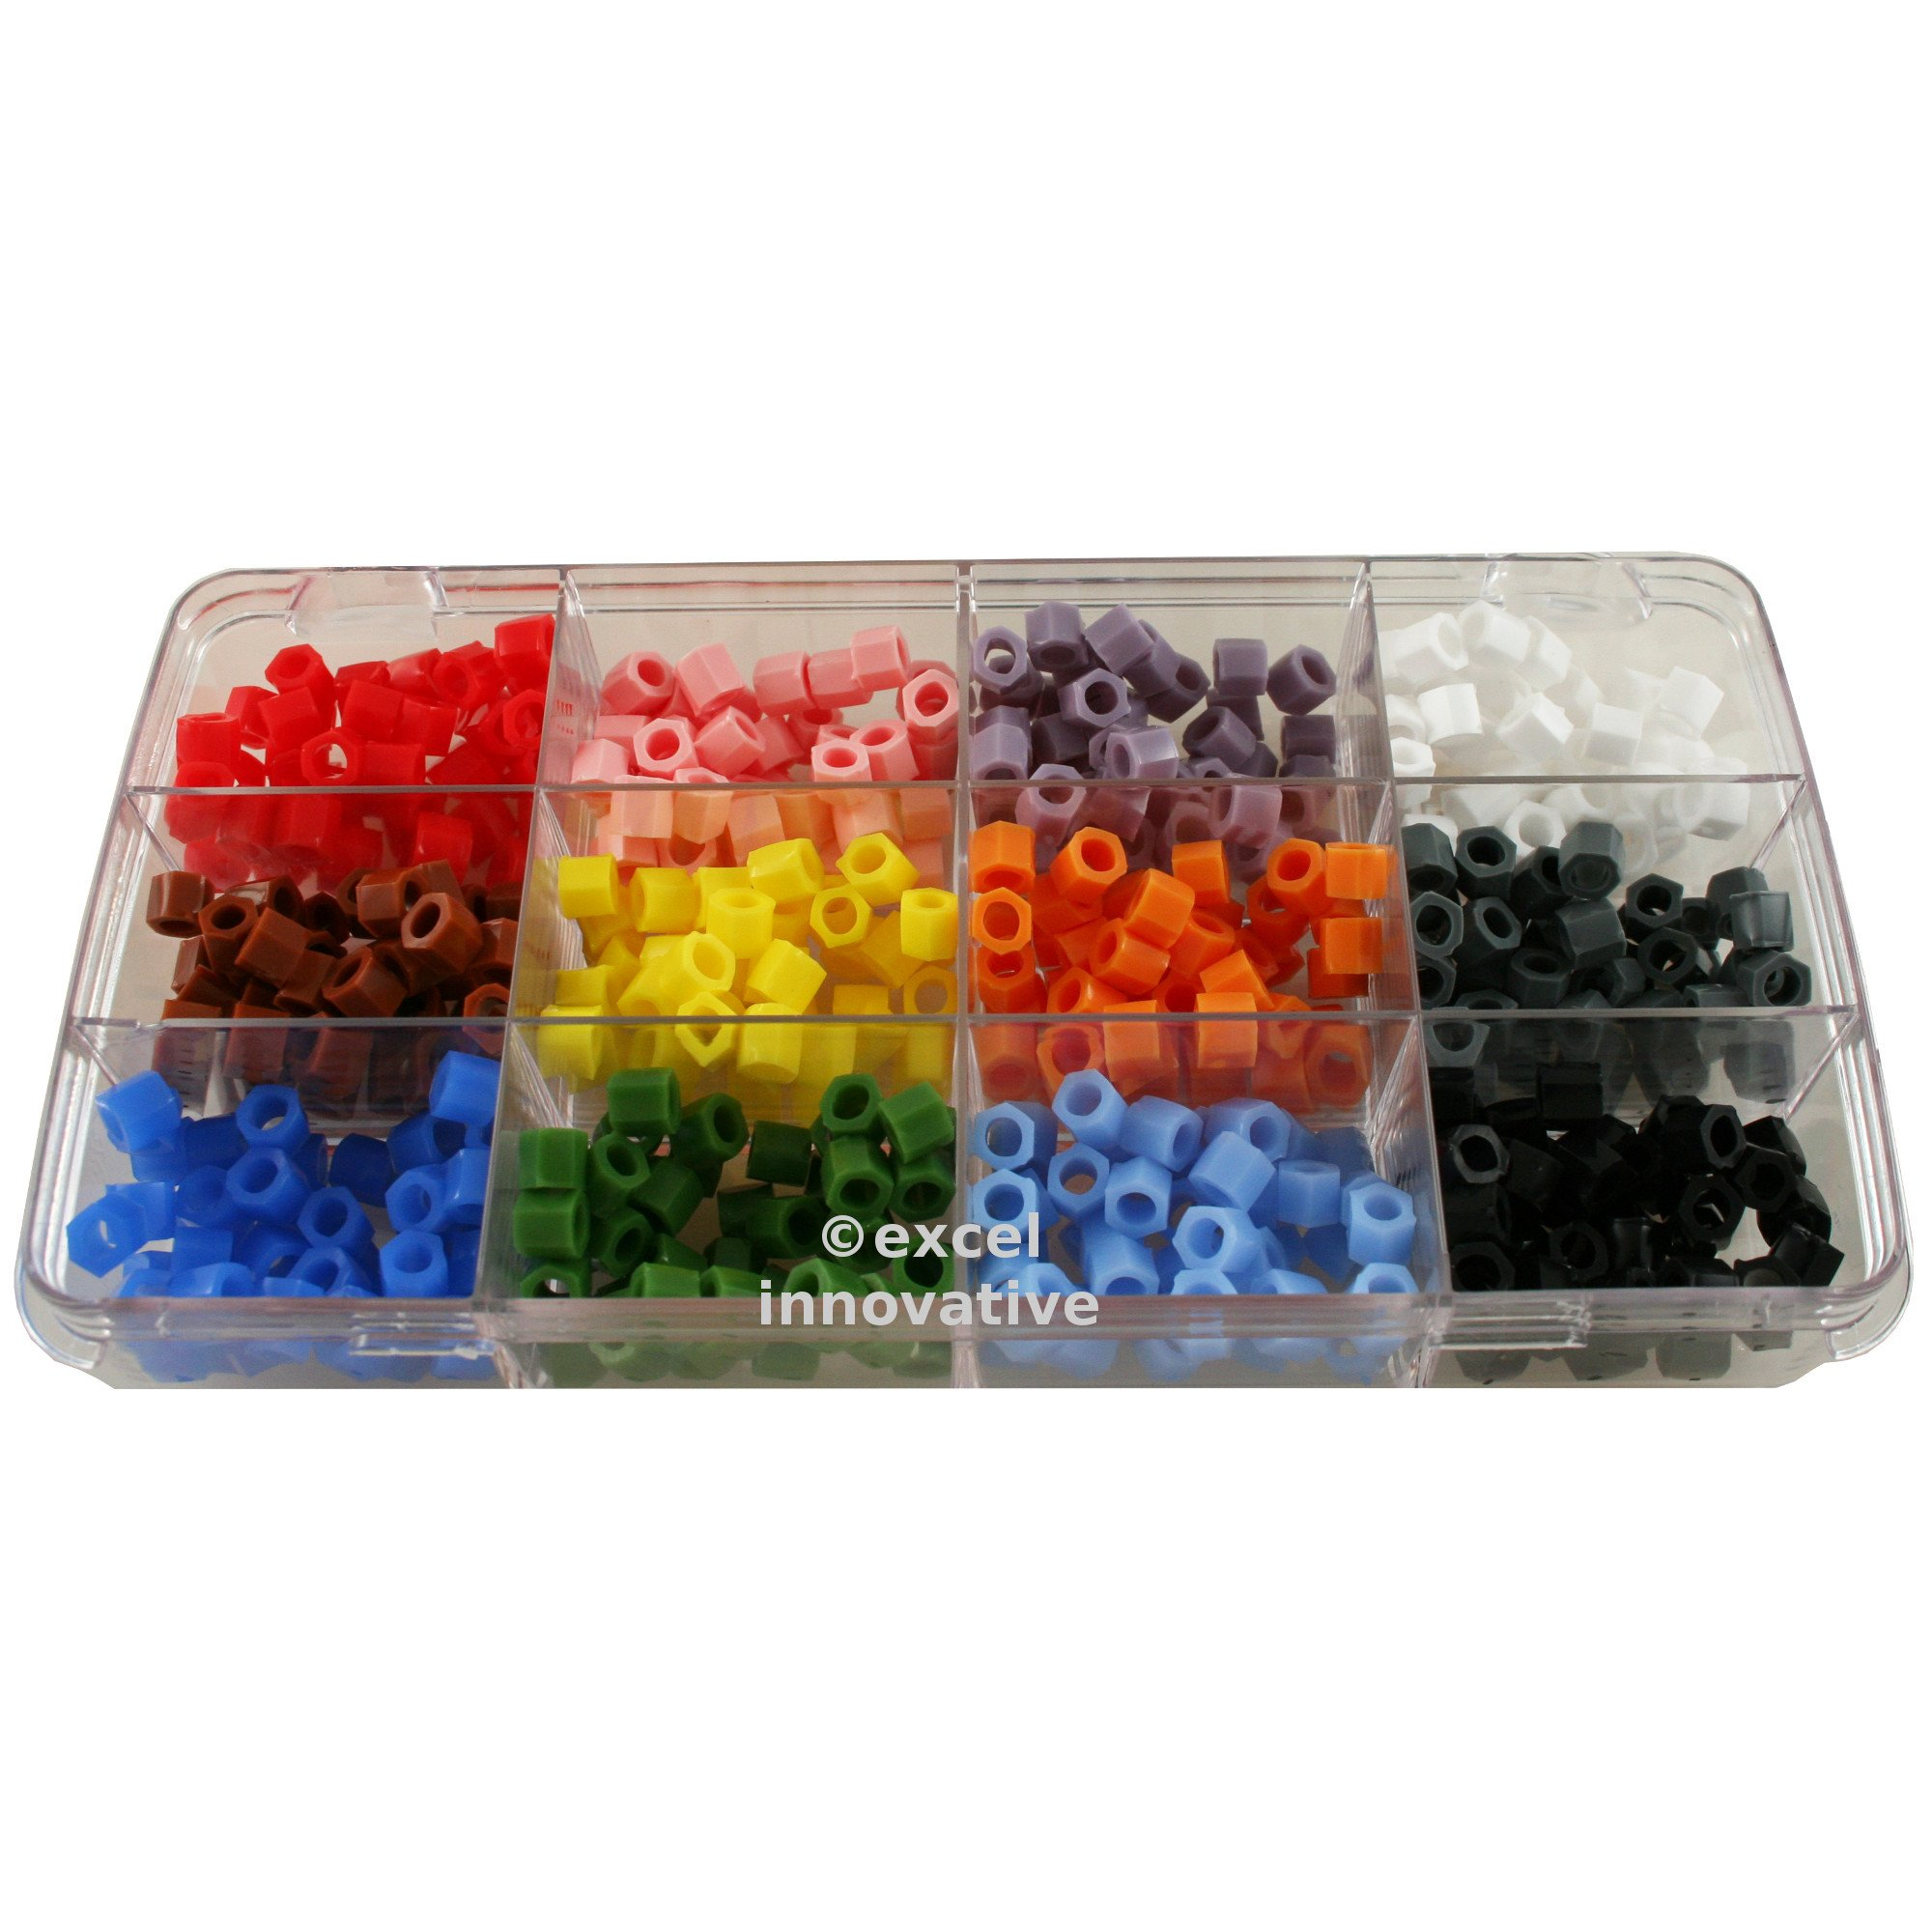 Kit of Silicone Color Bands for Instruments Identification 12 Assorted Colors in a Case 480pcs | Medixplus